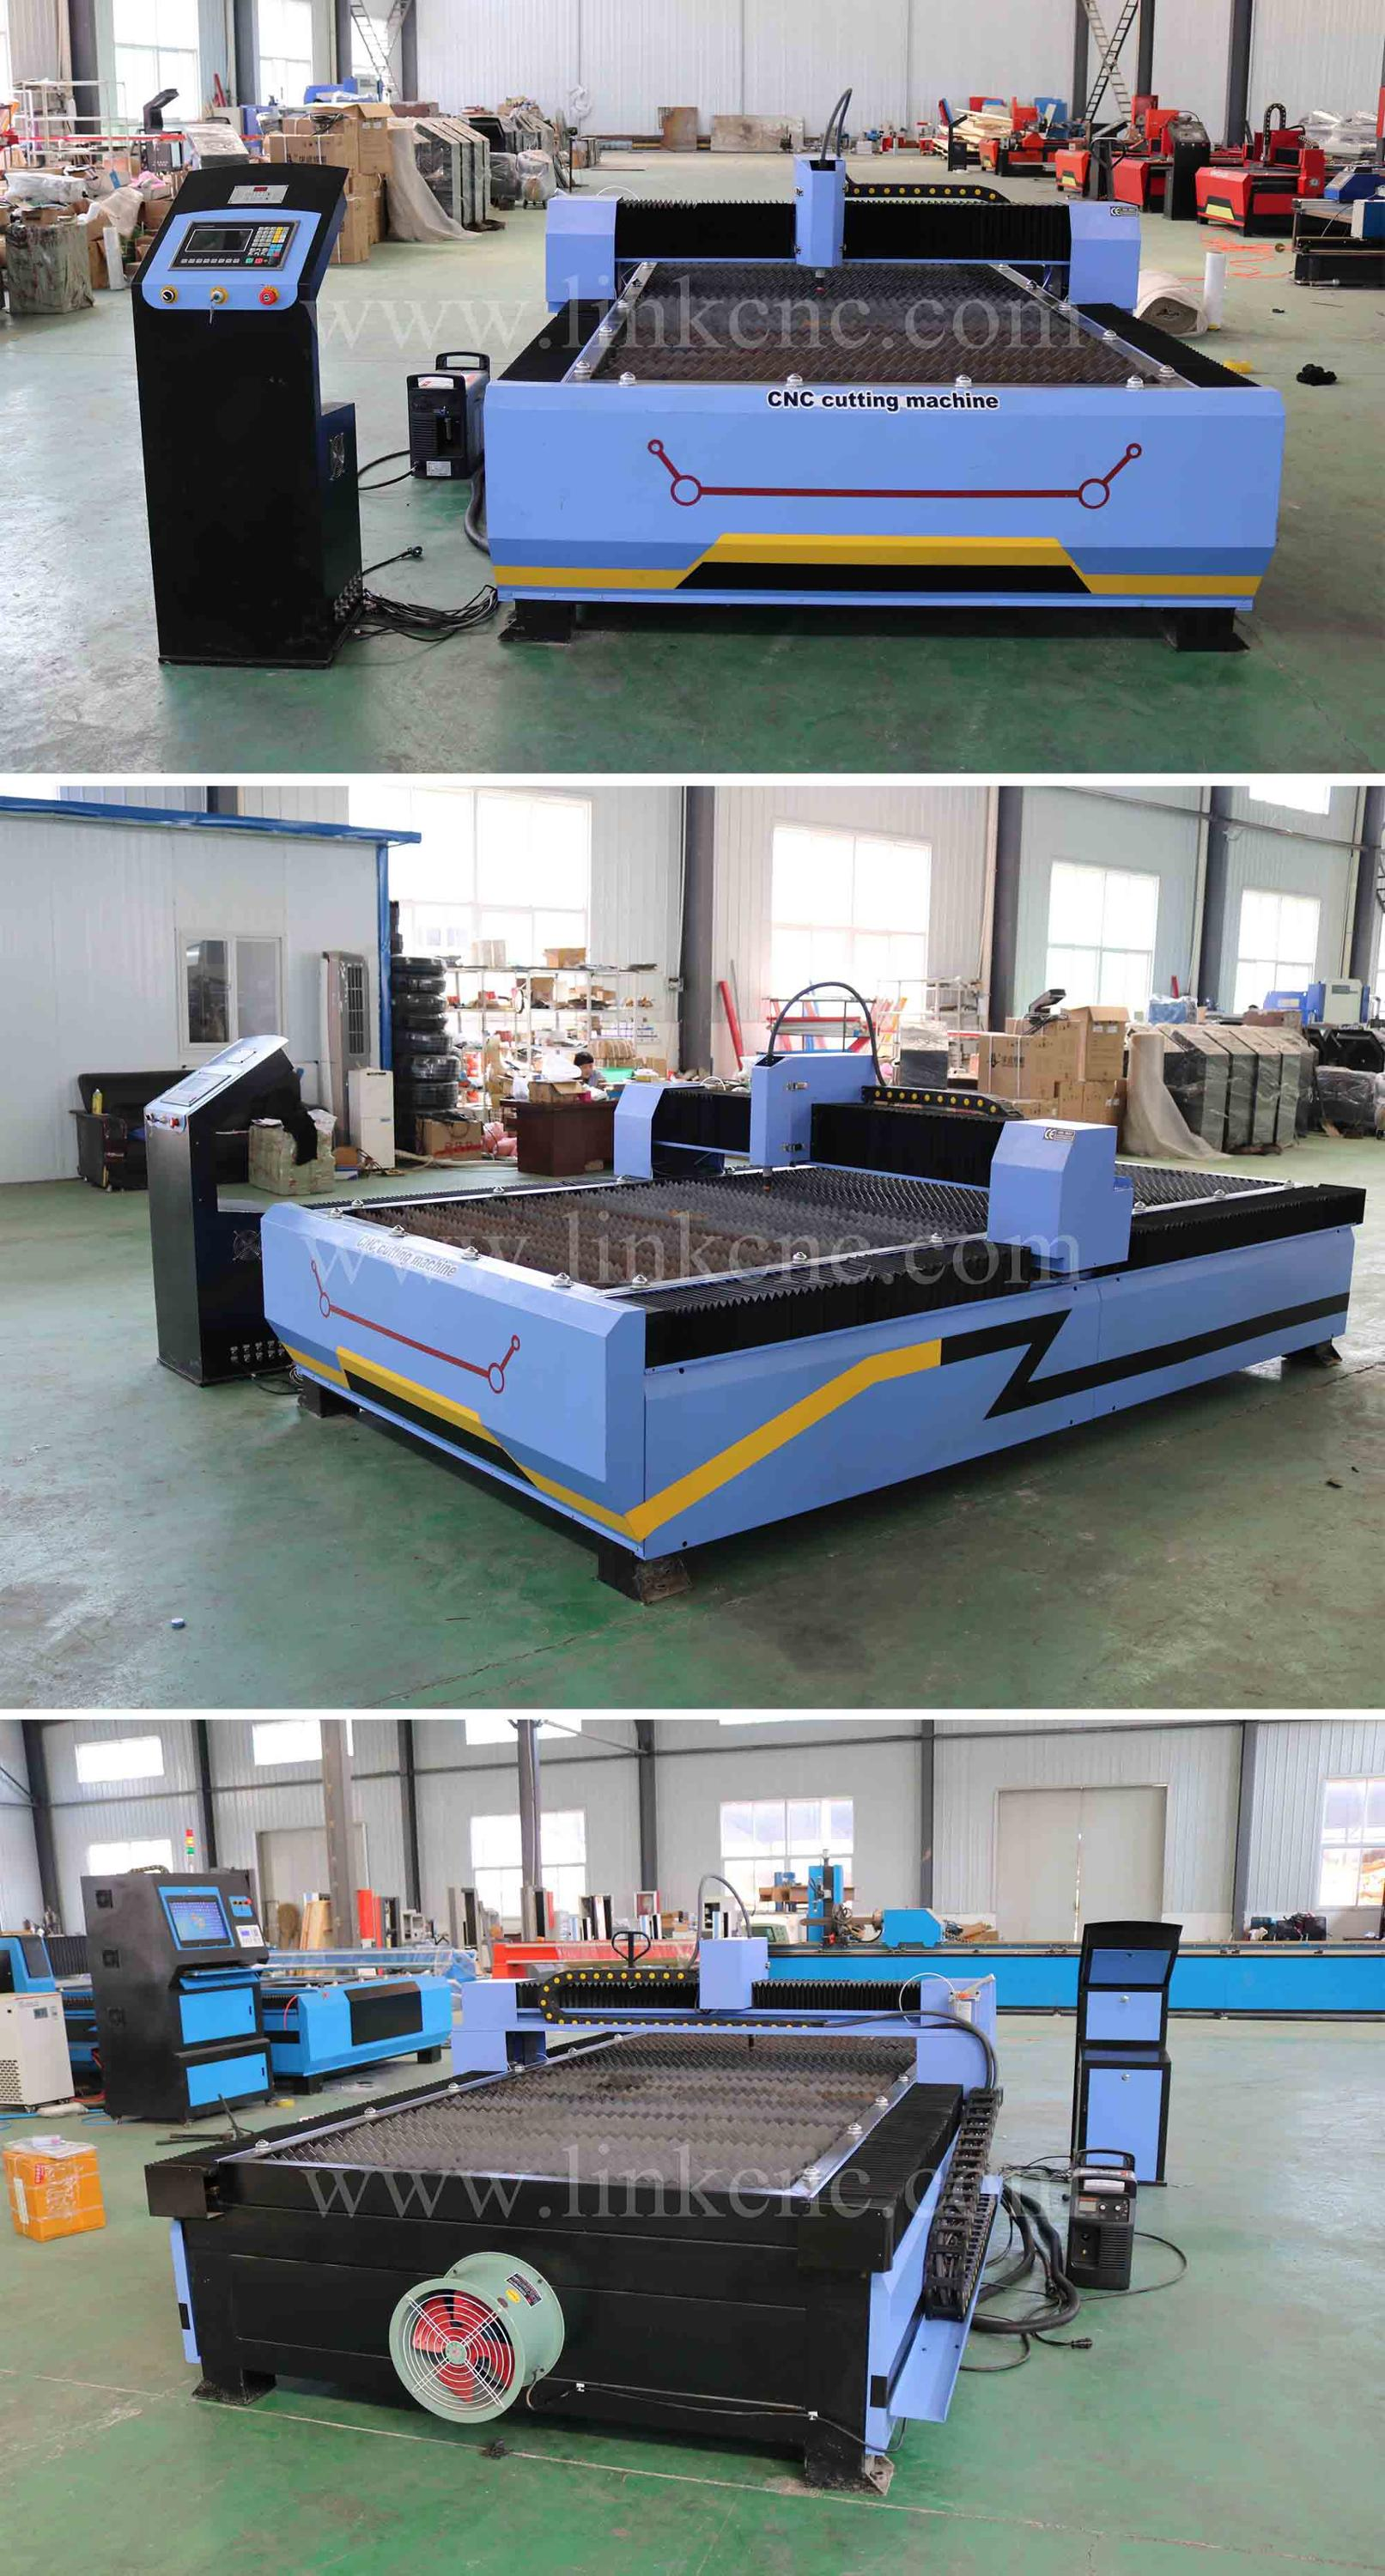 machine perfectly cutting table are steeltailor blog yeah economical iii sister hypertherm legendiii legend match with legned cnc yeahlegend plasma brands and